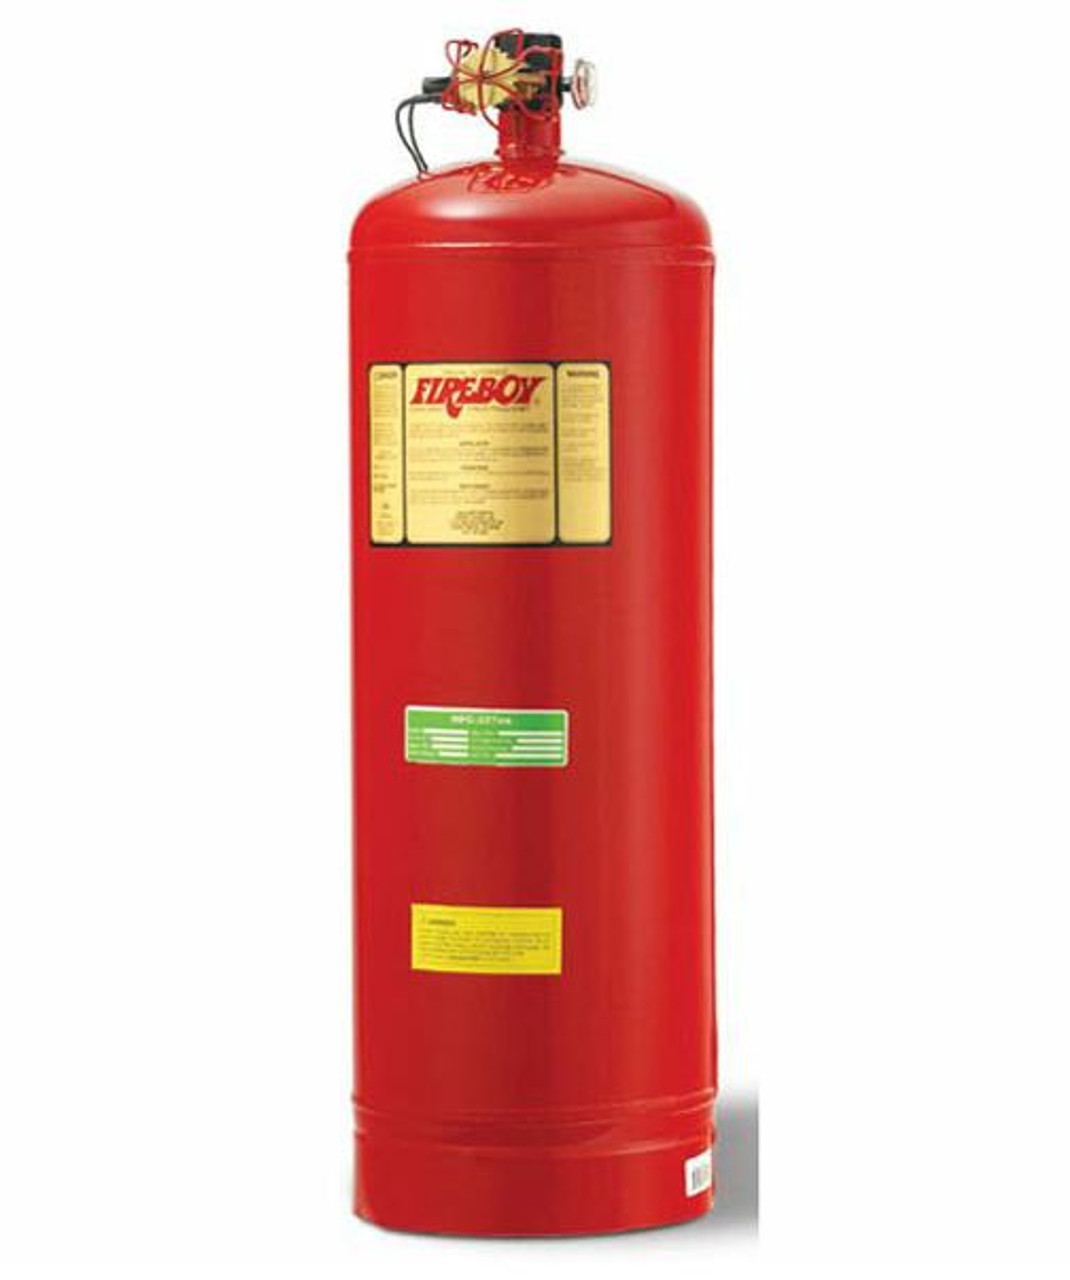 Fireboy Manual/Automatic Fire Systems